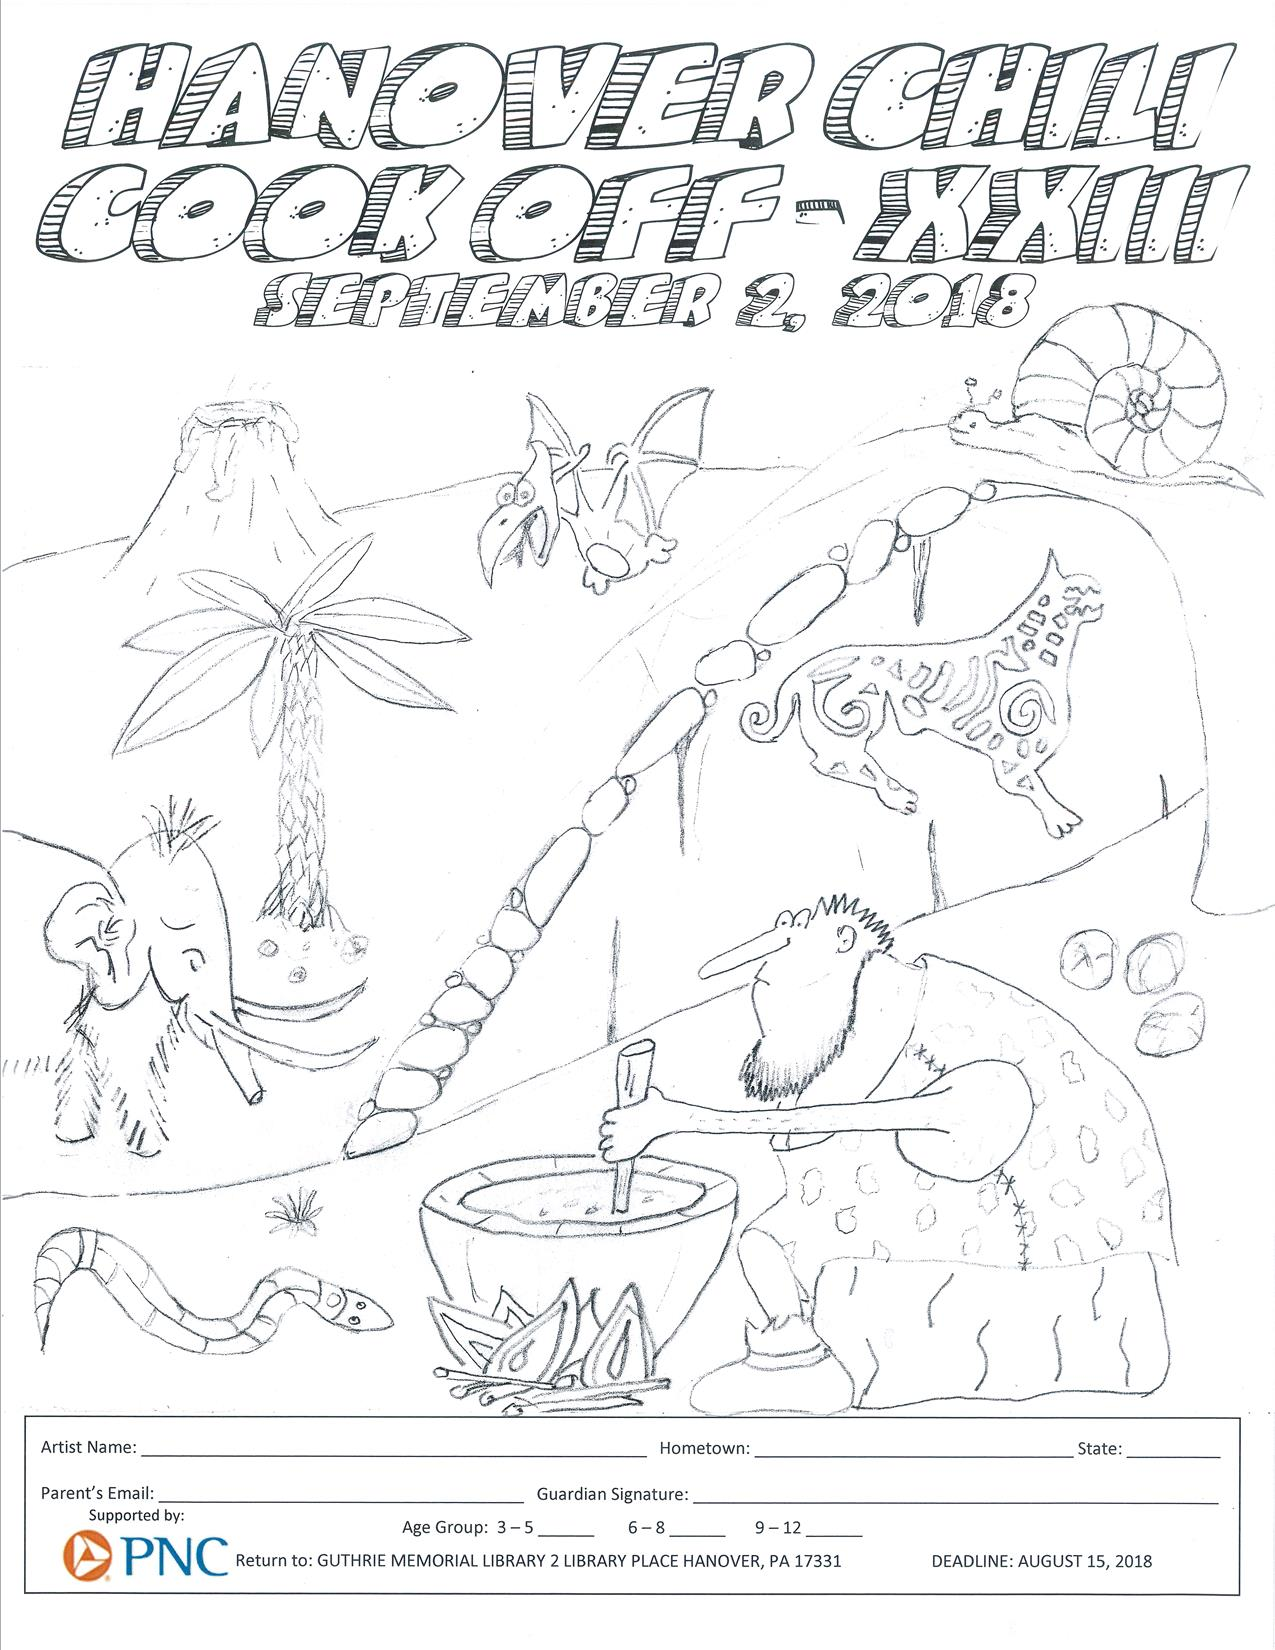 Coloring Contest | Hanover Chili Cook Off